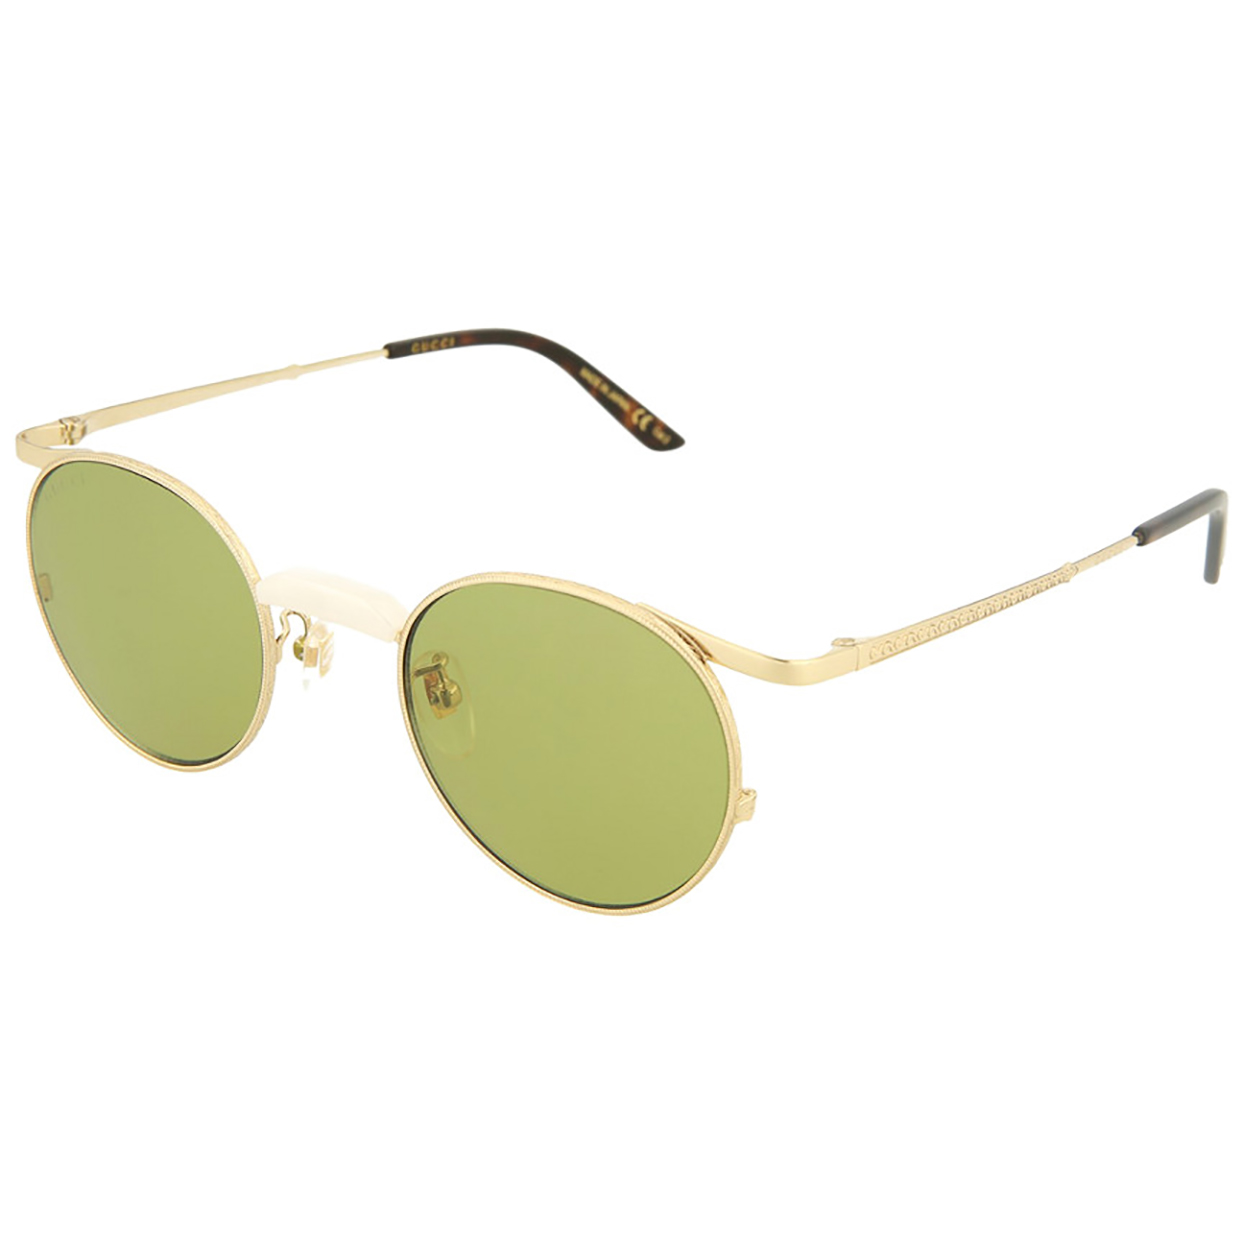 Gucci Unisex GG0238S 47mm Sunglasses